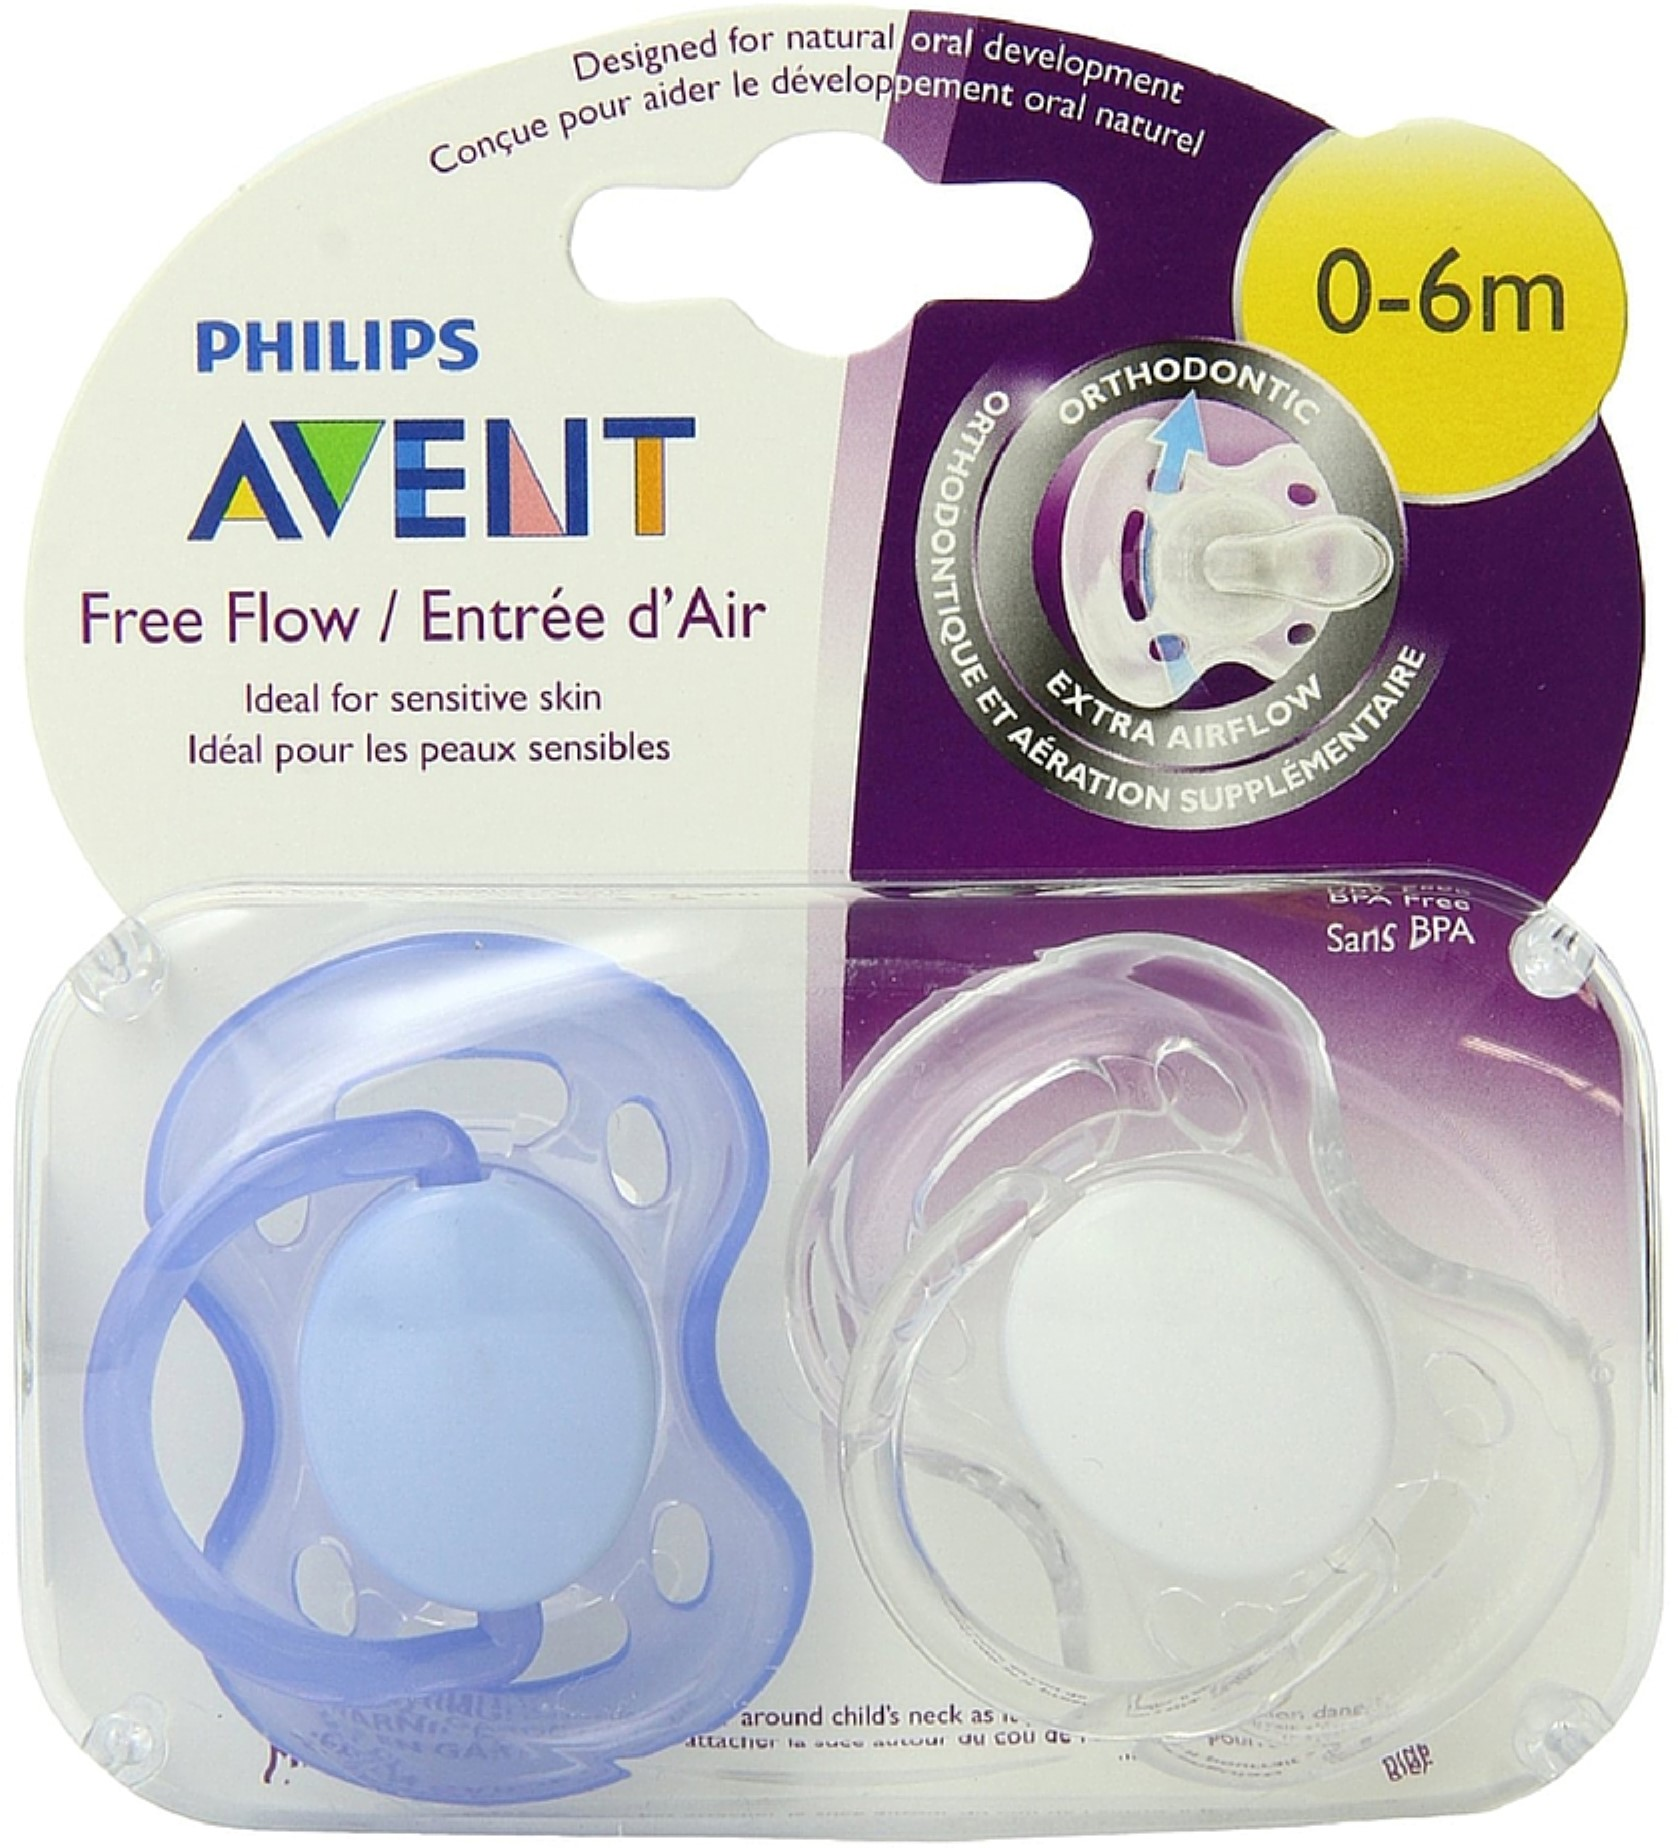 Philips Avent Freeflow Pacifier 0-6m, Color may vary, 2 pack, SCF178/23